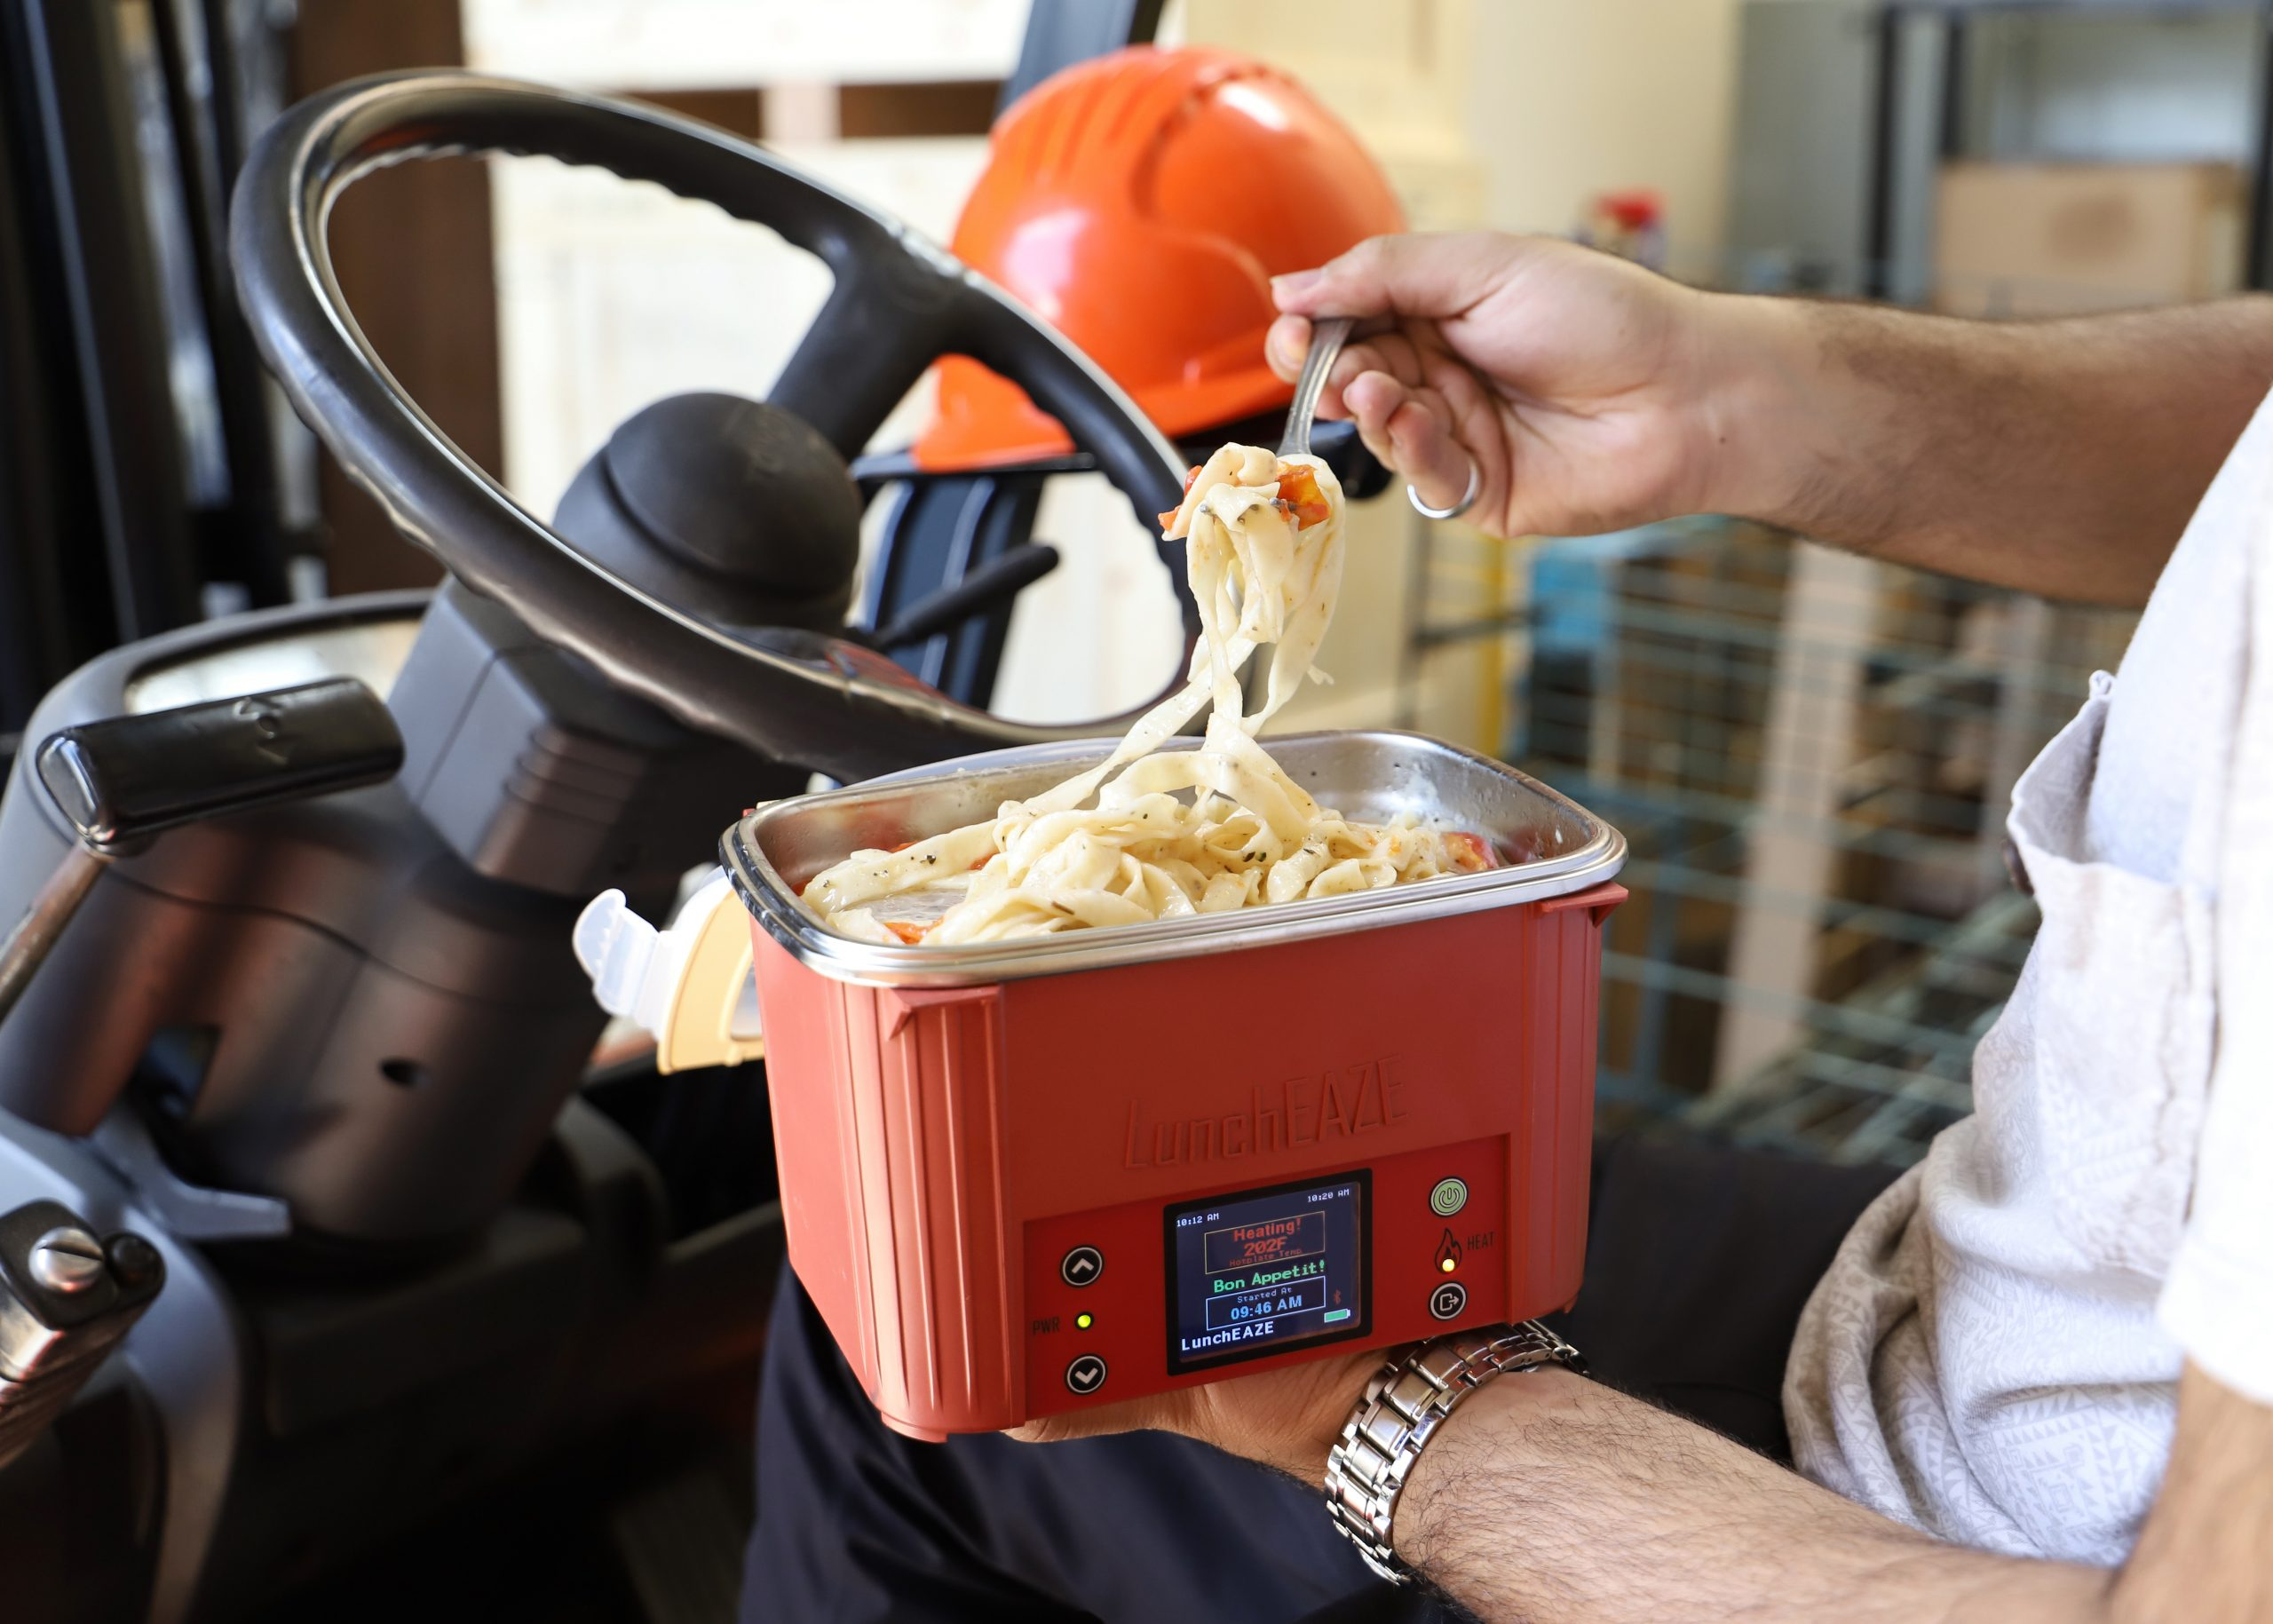 LunchEAZE heated lunch box at work